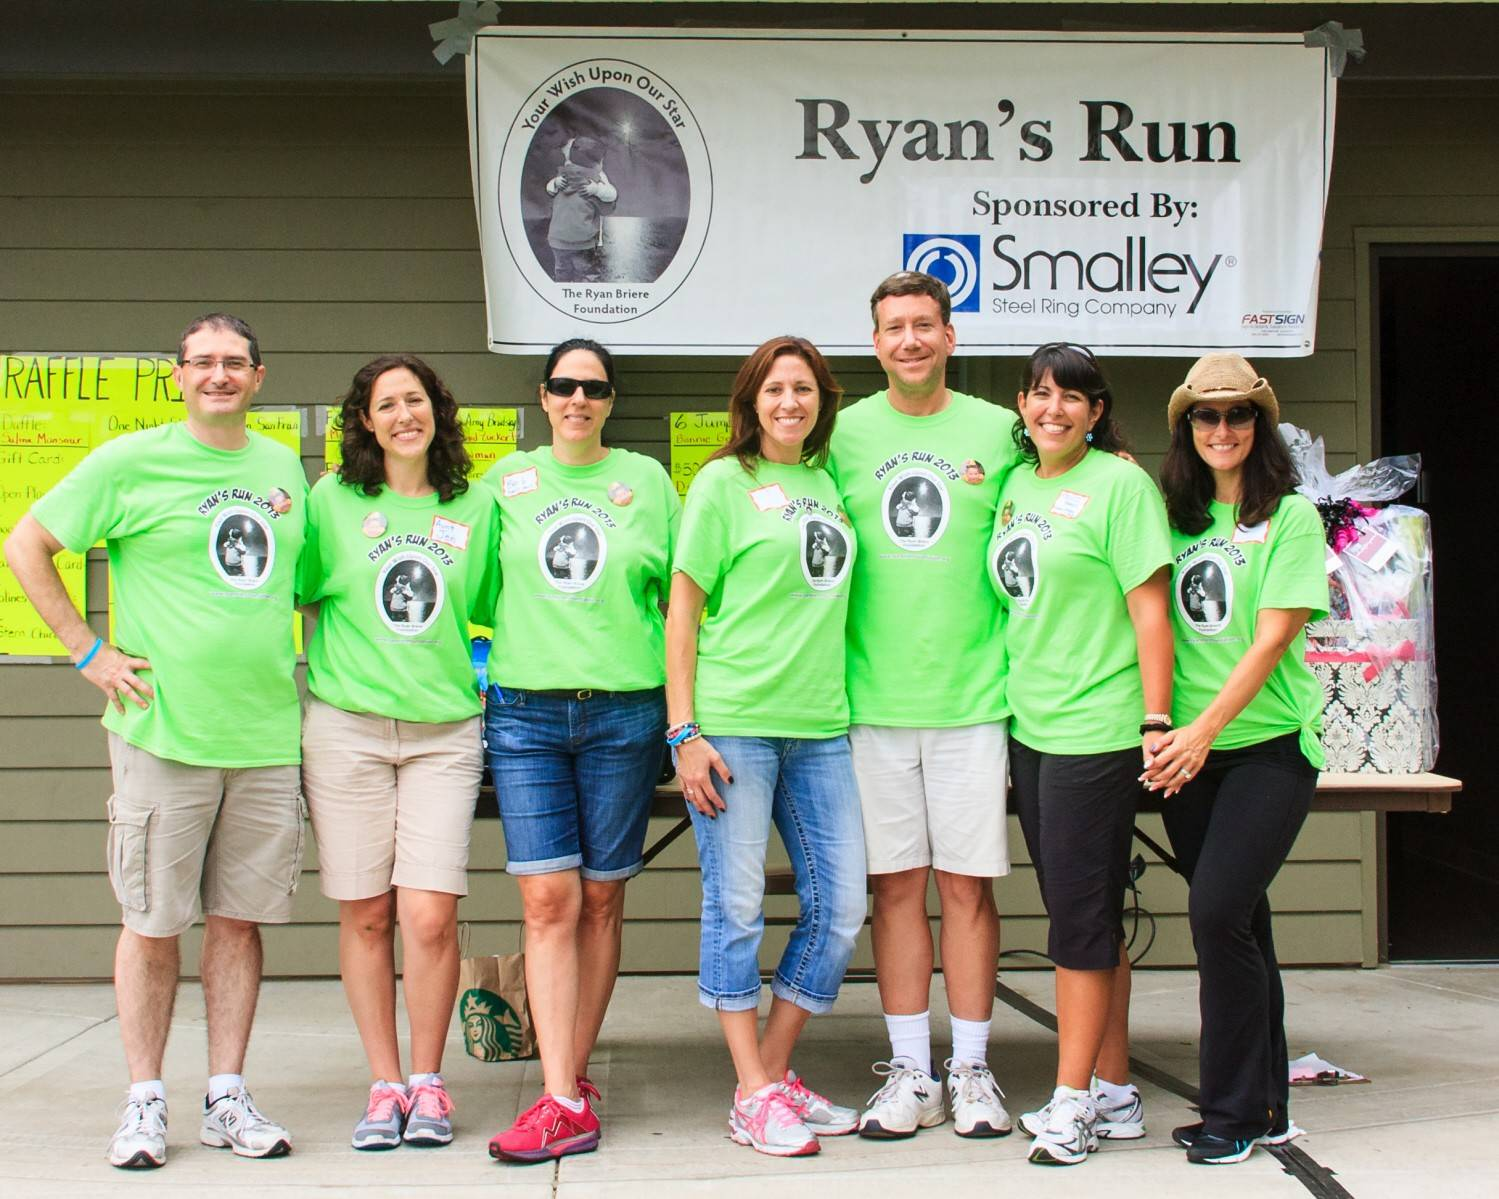 Ryan Briere Foundation Board and Committee members celebrate a successful Ryan's Run in 2013. From left: board and committee member Frederick Briere (Ryan's father); commitee members Jennifer Mehr and Barb Stark; board and committee member Lori Briere (Ryan's mother); board member Jay Krames; and commitee members Trudi Krames and Dr. Michelle Carafiol.